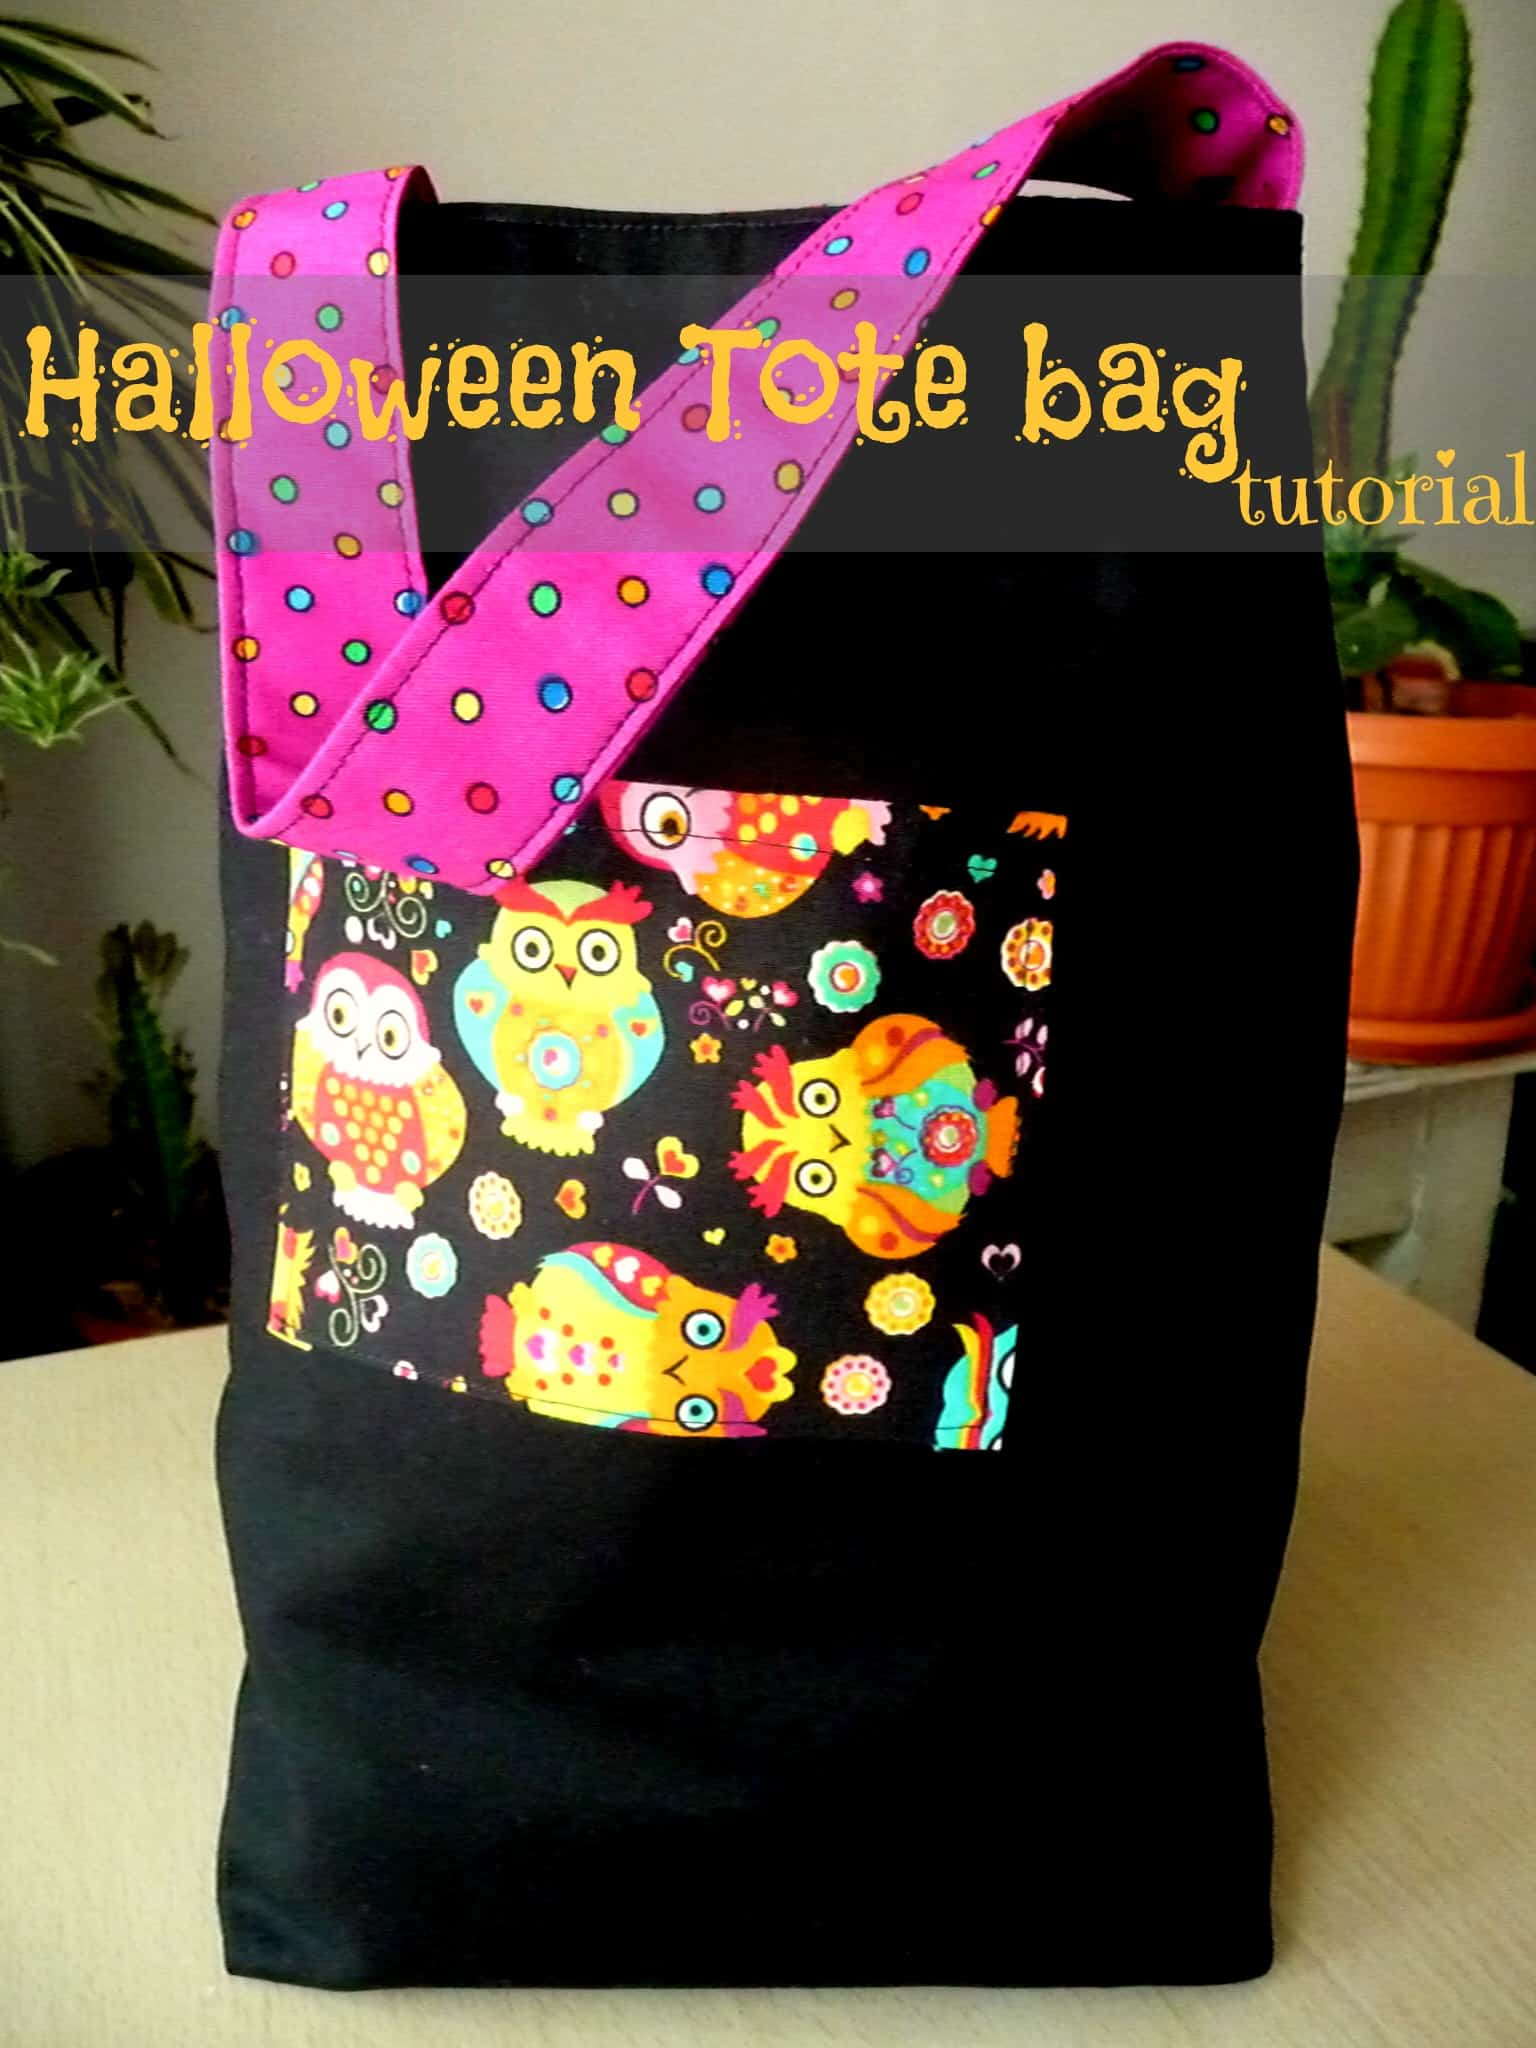 Trick-or-treat tote bags with a pocket